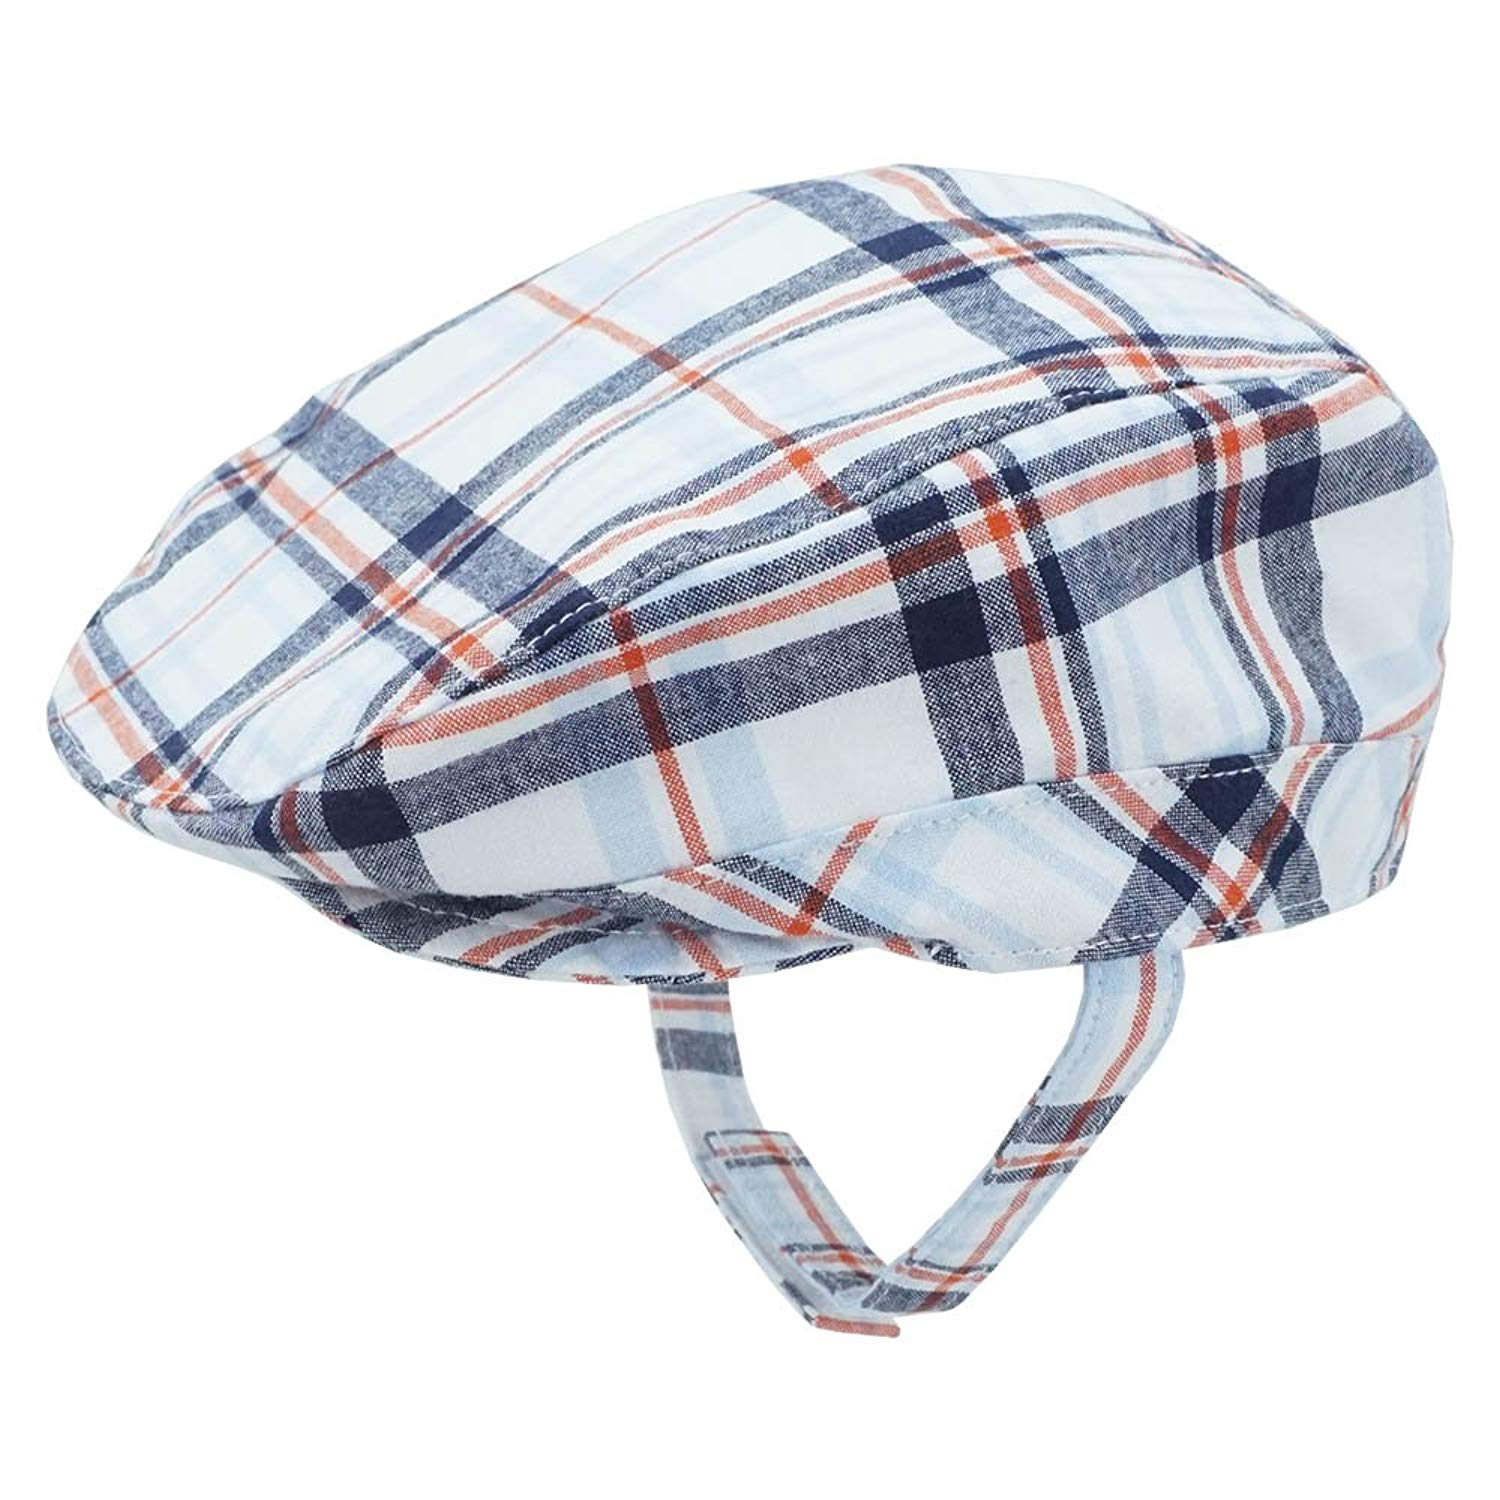 6c23364db38c7 Get Quotations · Keepersheep Baby Boys newsboy Cap